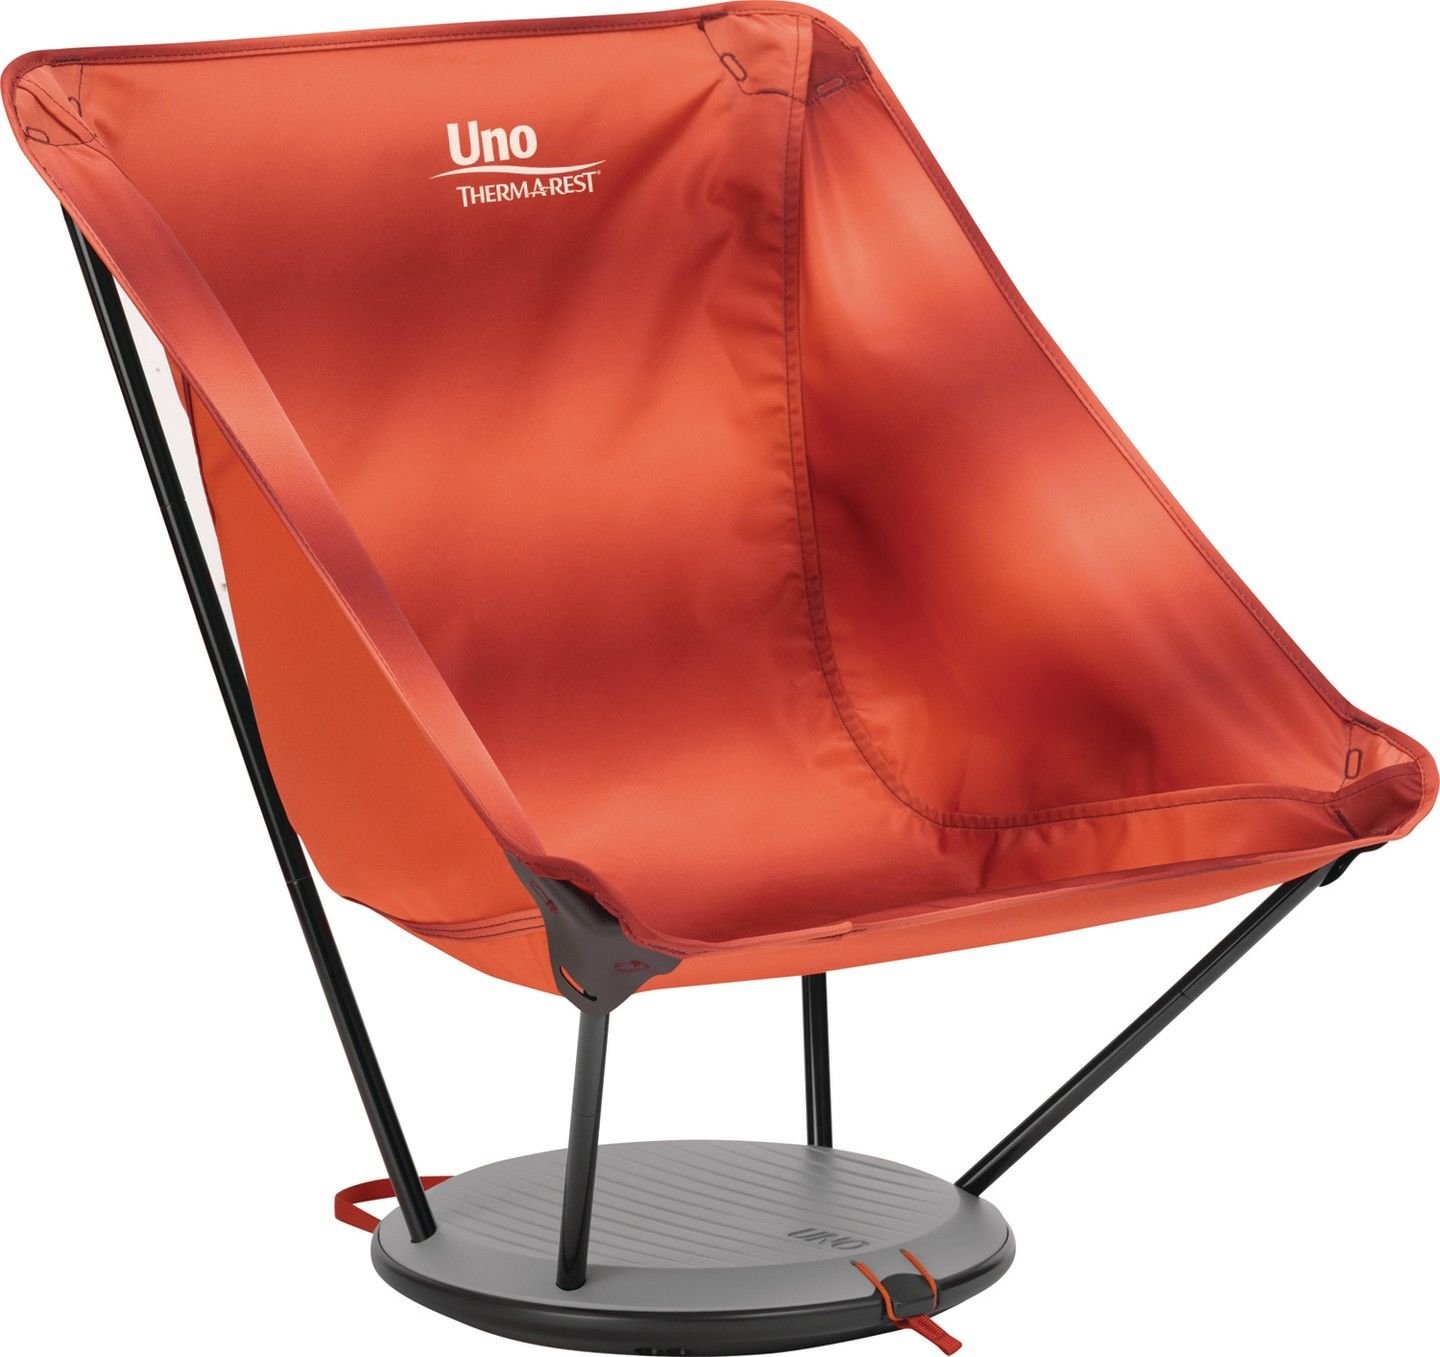 Therm-a-Rest UNO Chair Rot, One Size -Farbe Ember, One Size